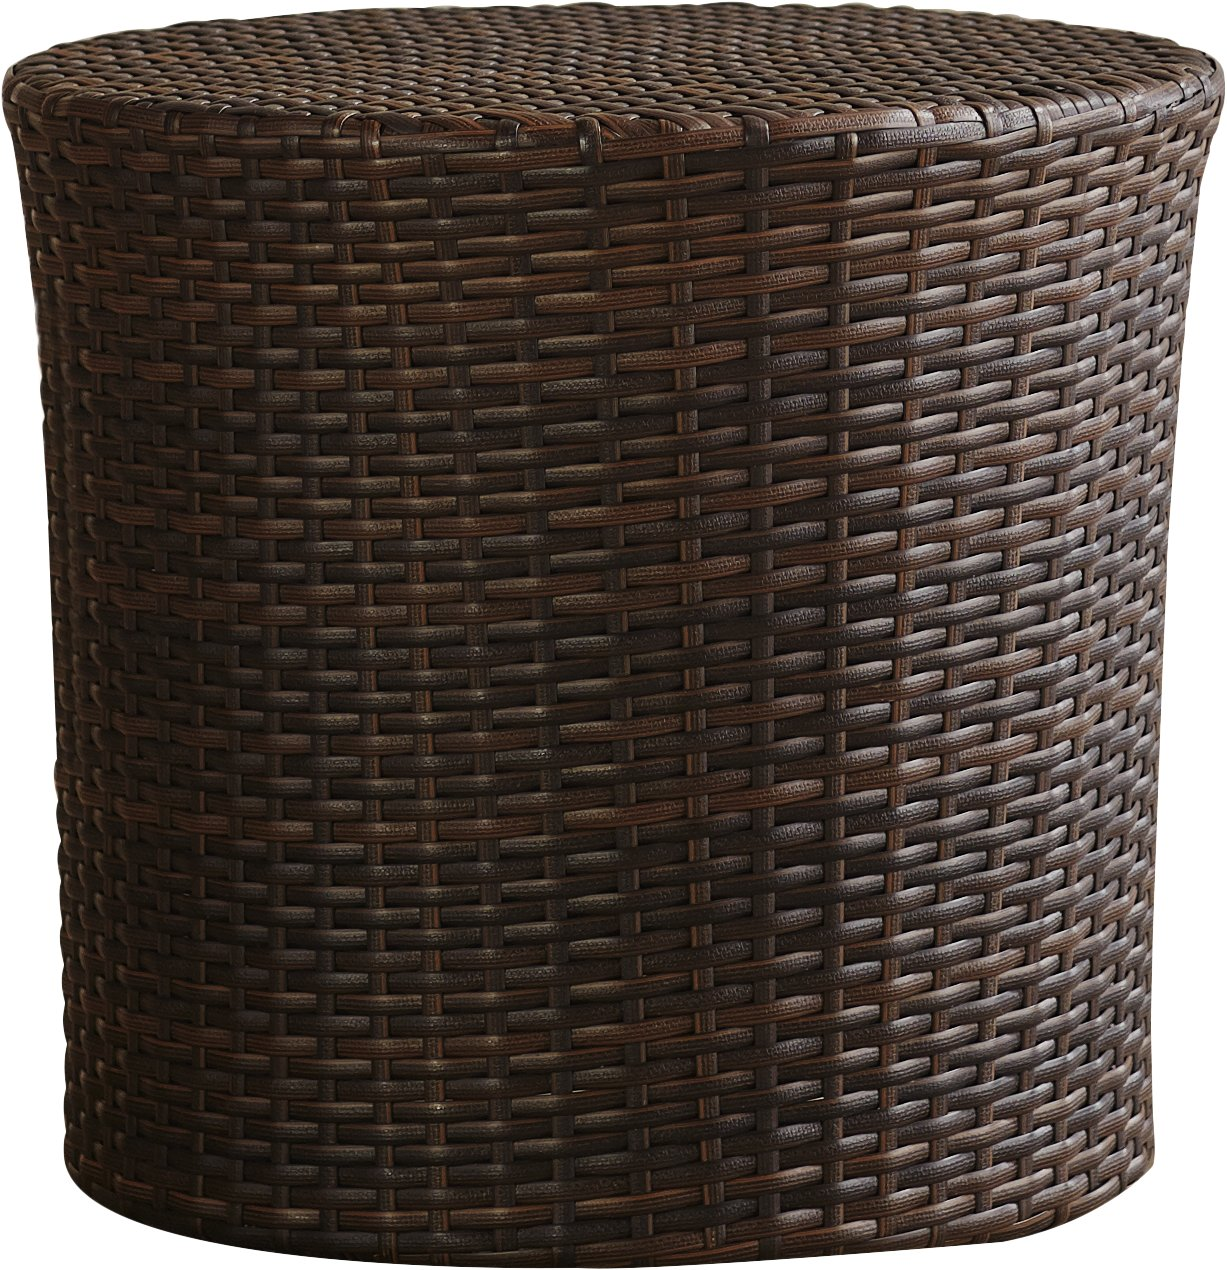 mazzella barrel wicker side table reviews outdoor brown dale tiffany dragonfly lily lamp stained glass standing round granite top coffee luxury living room furniture pier dining